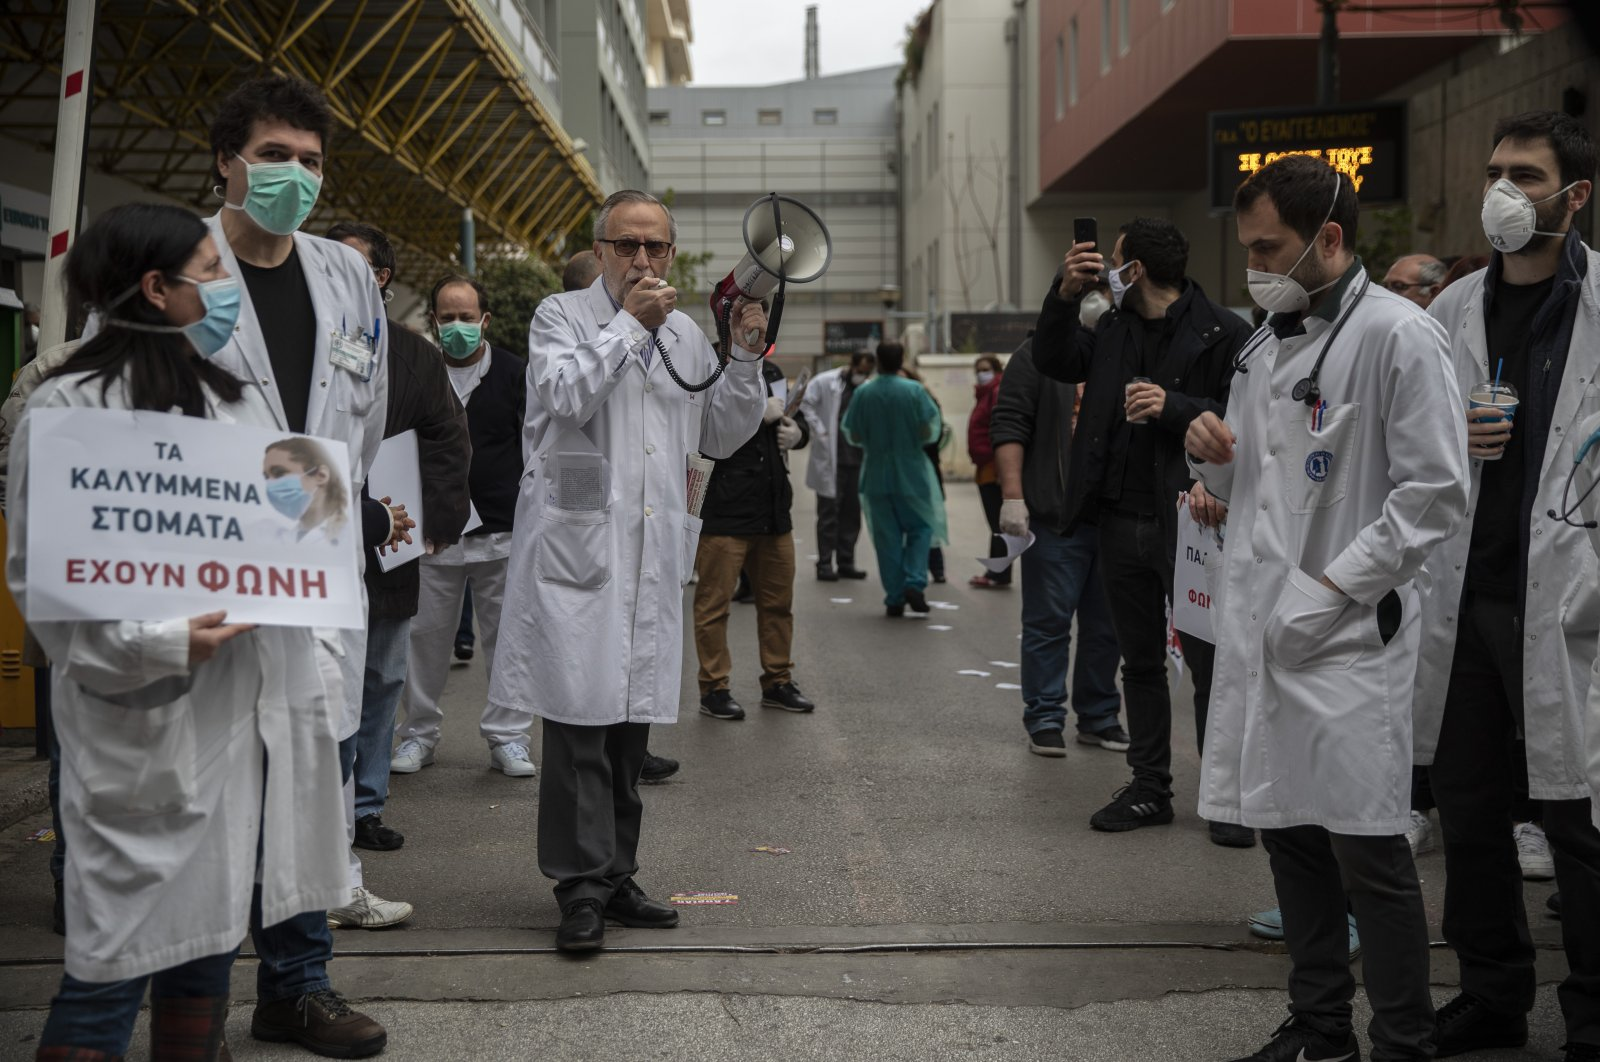 A doctor speaks through a loudspeaker during a protest at Evagelismos hospital during the World Health Day, Athens, Tuesday, April 7, 2020. (AP Photo)